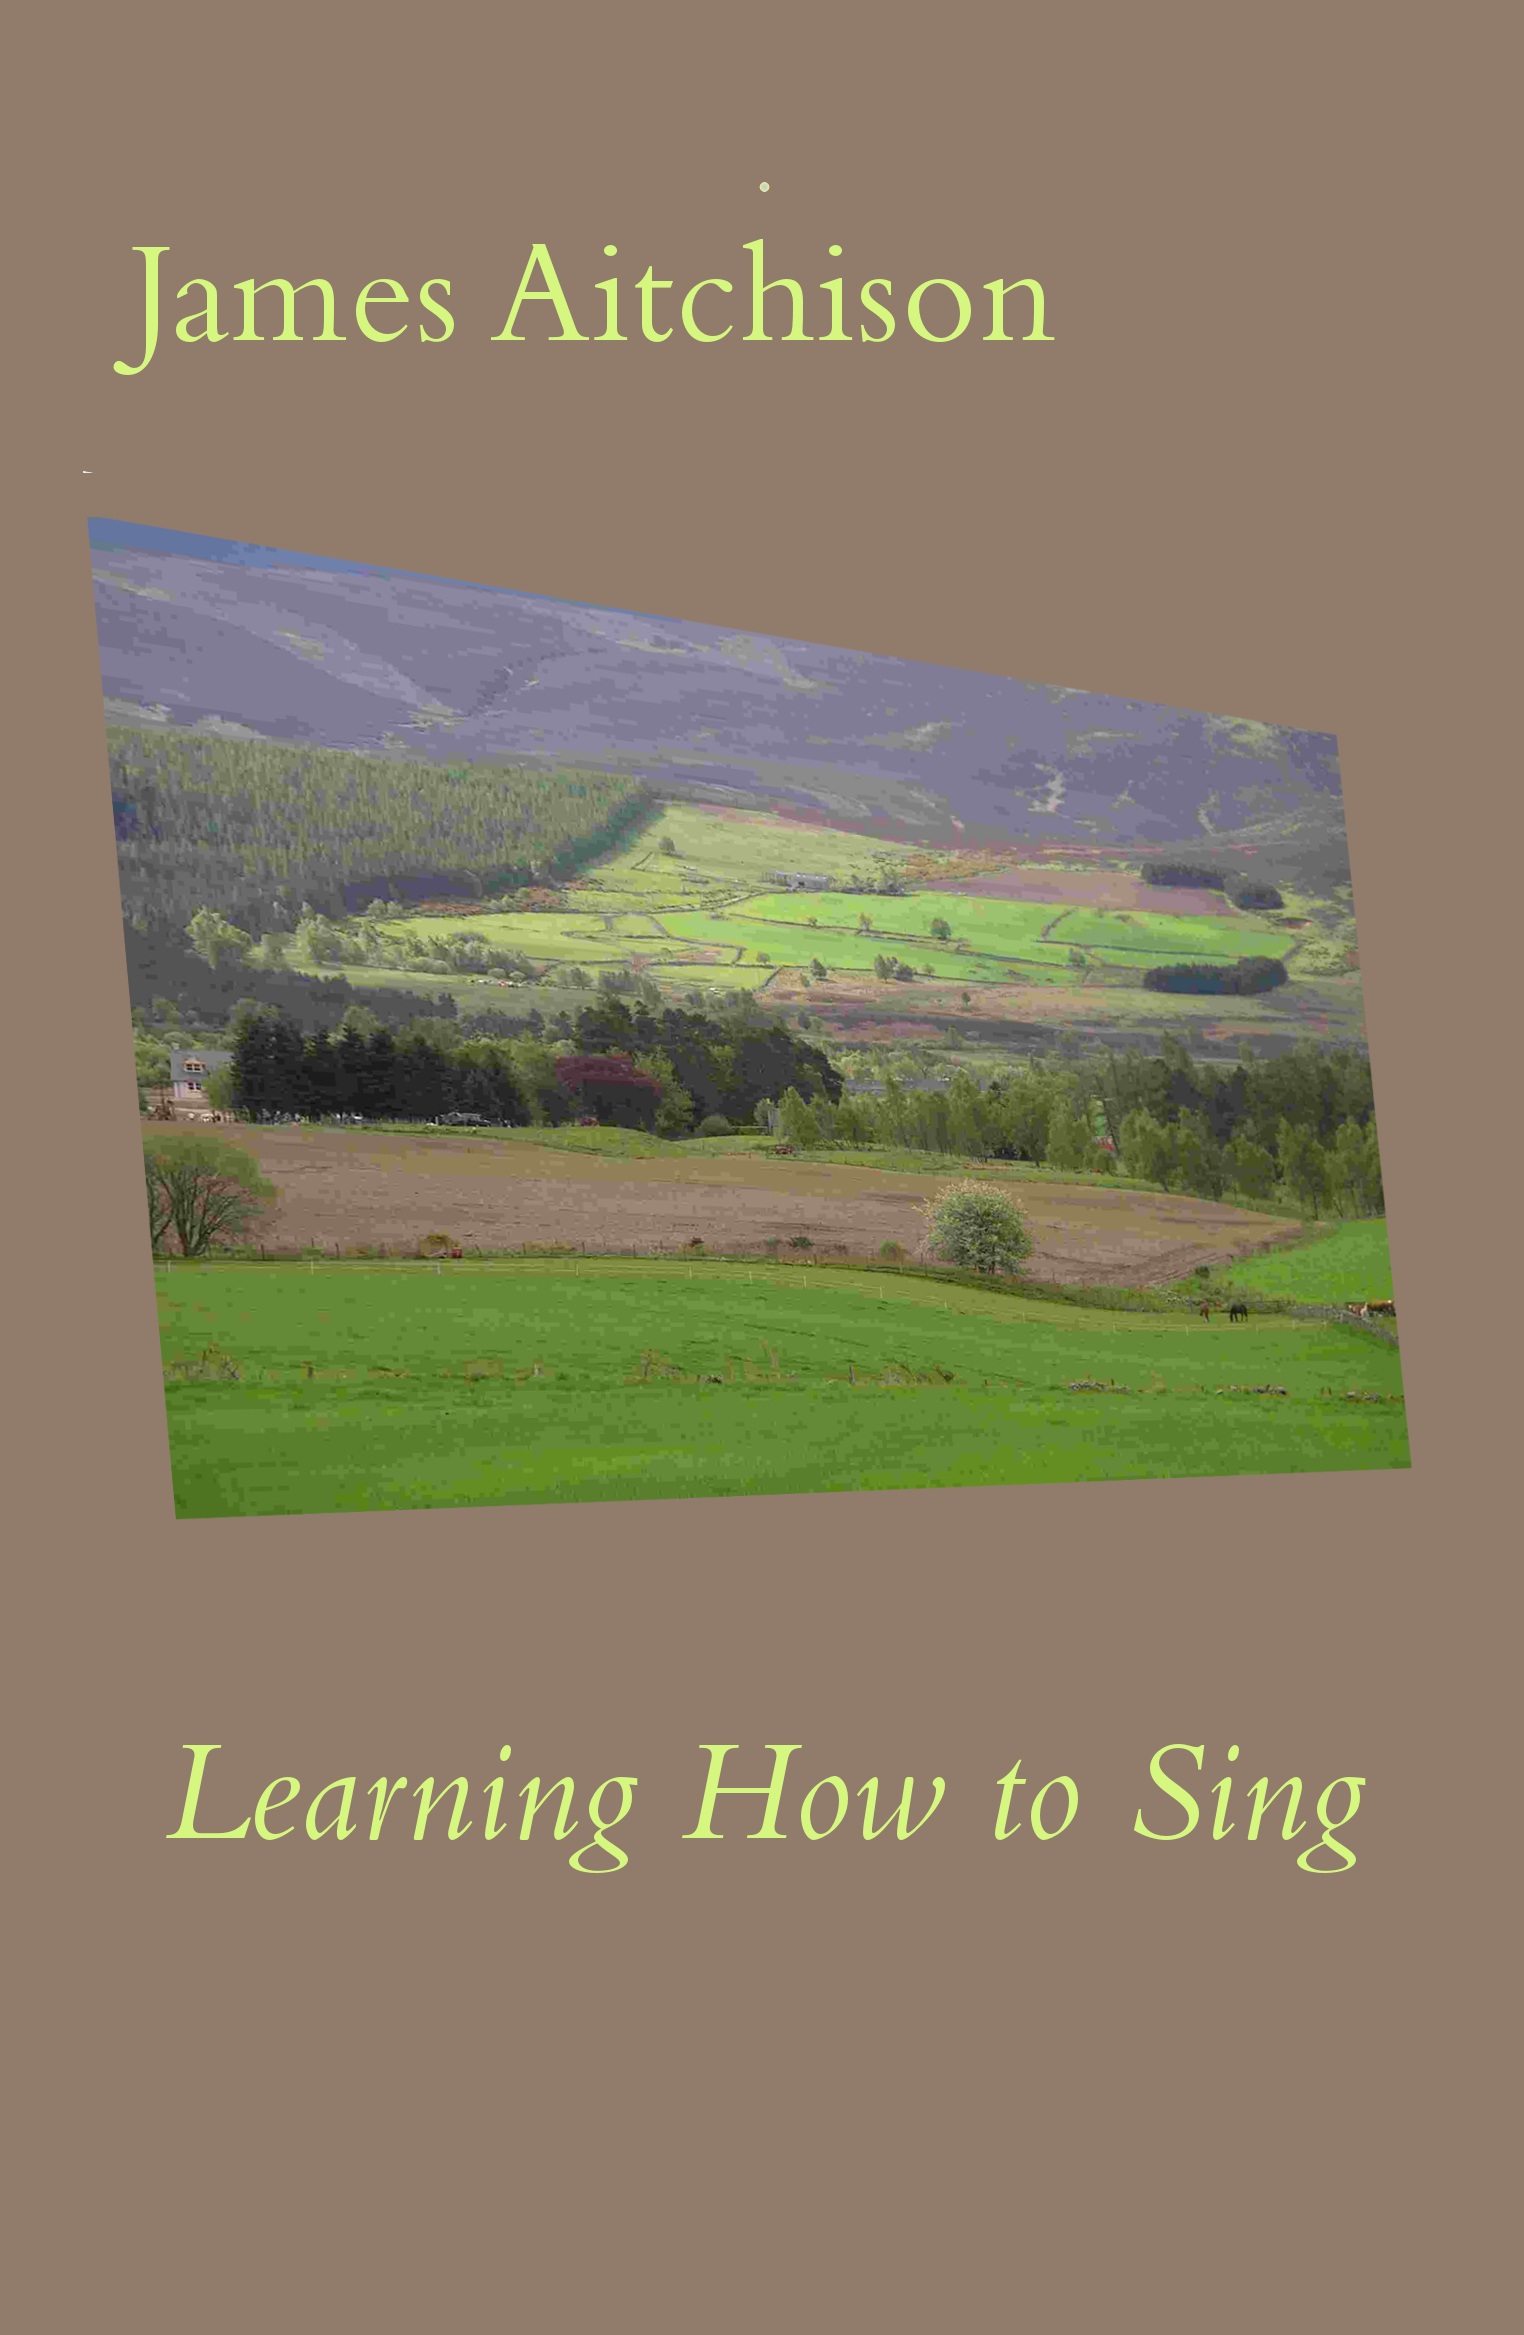 image of Learning to Sing book cover, with a Scottish landscape